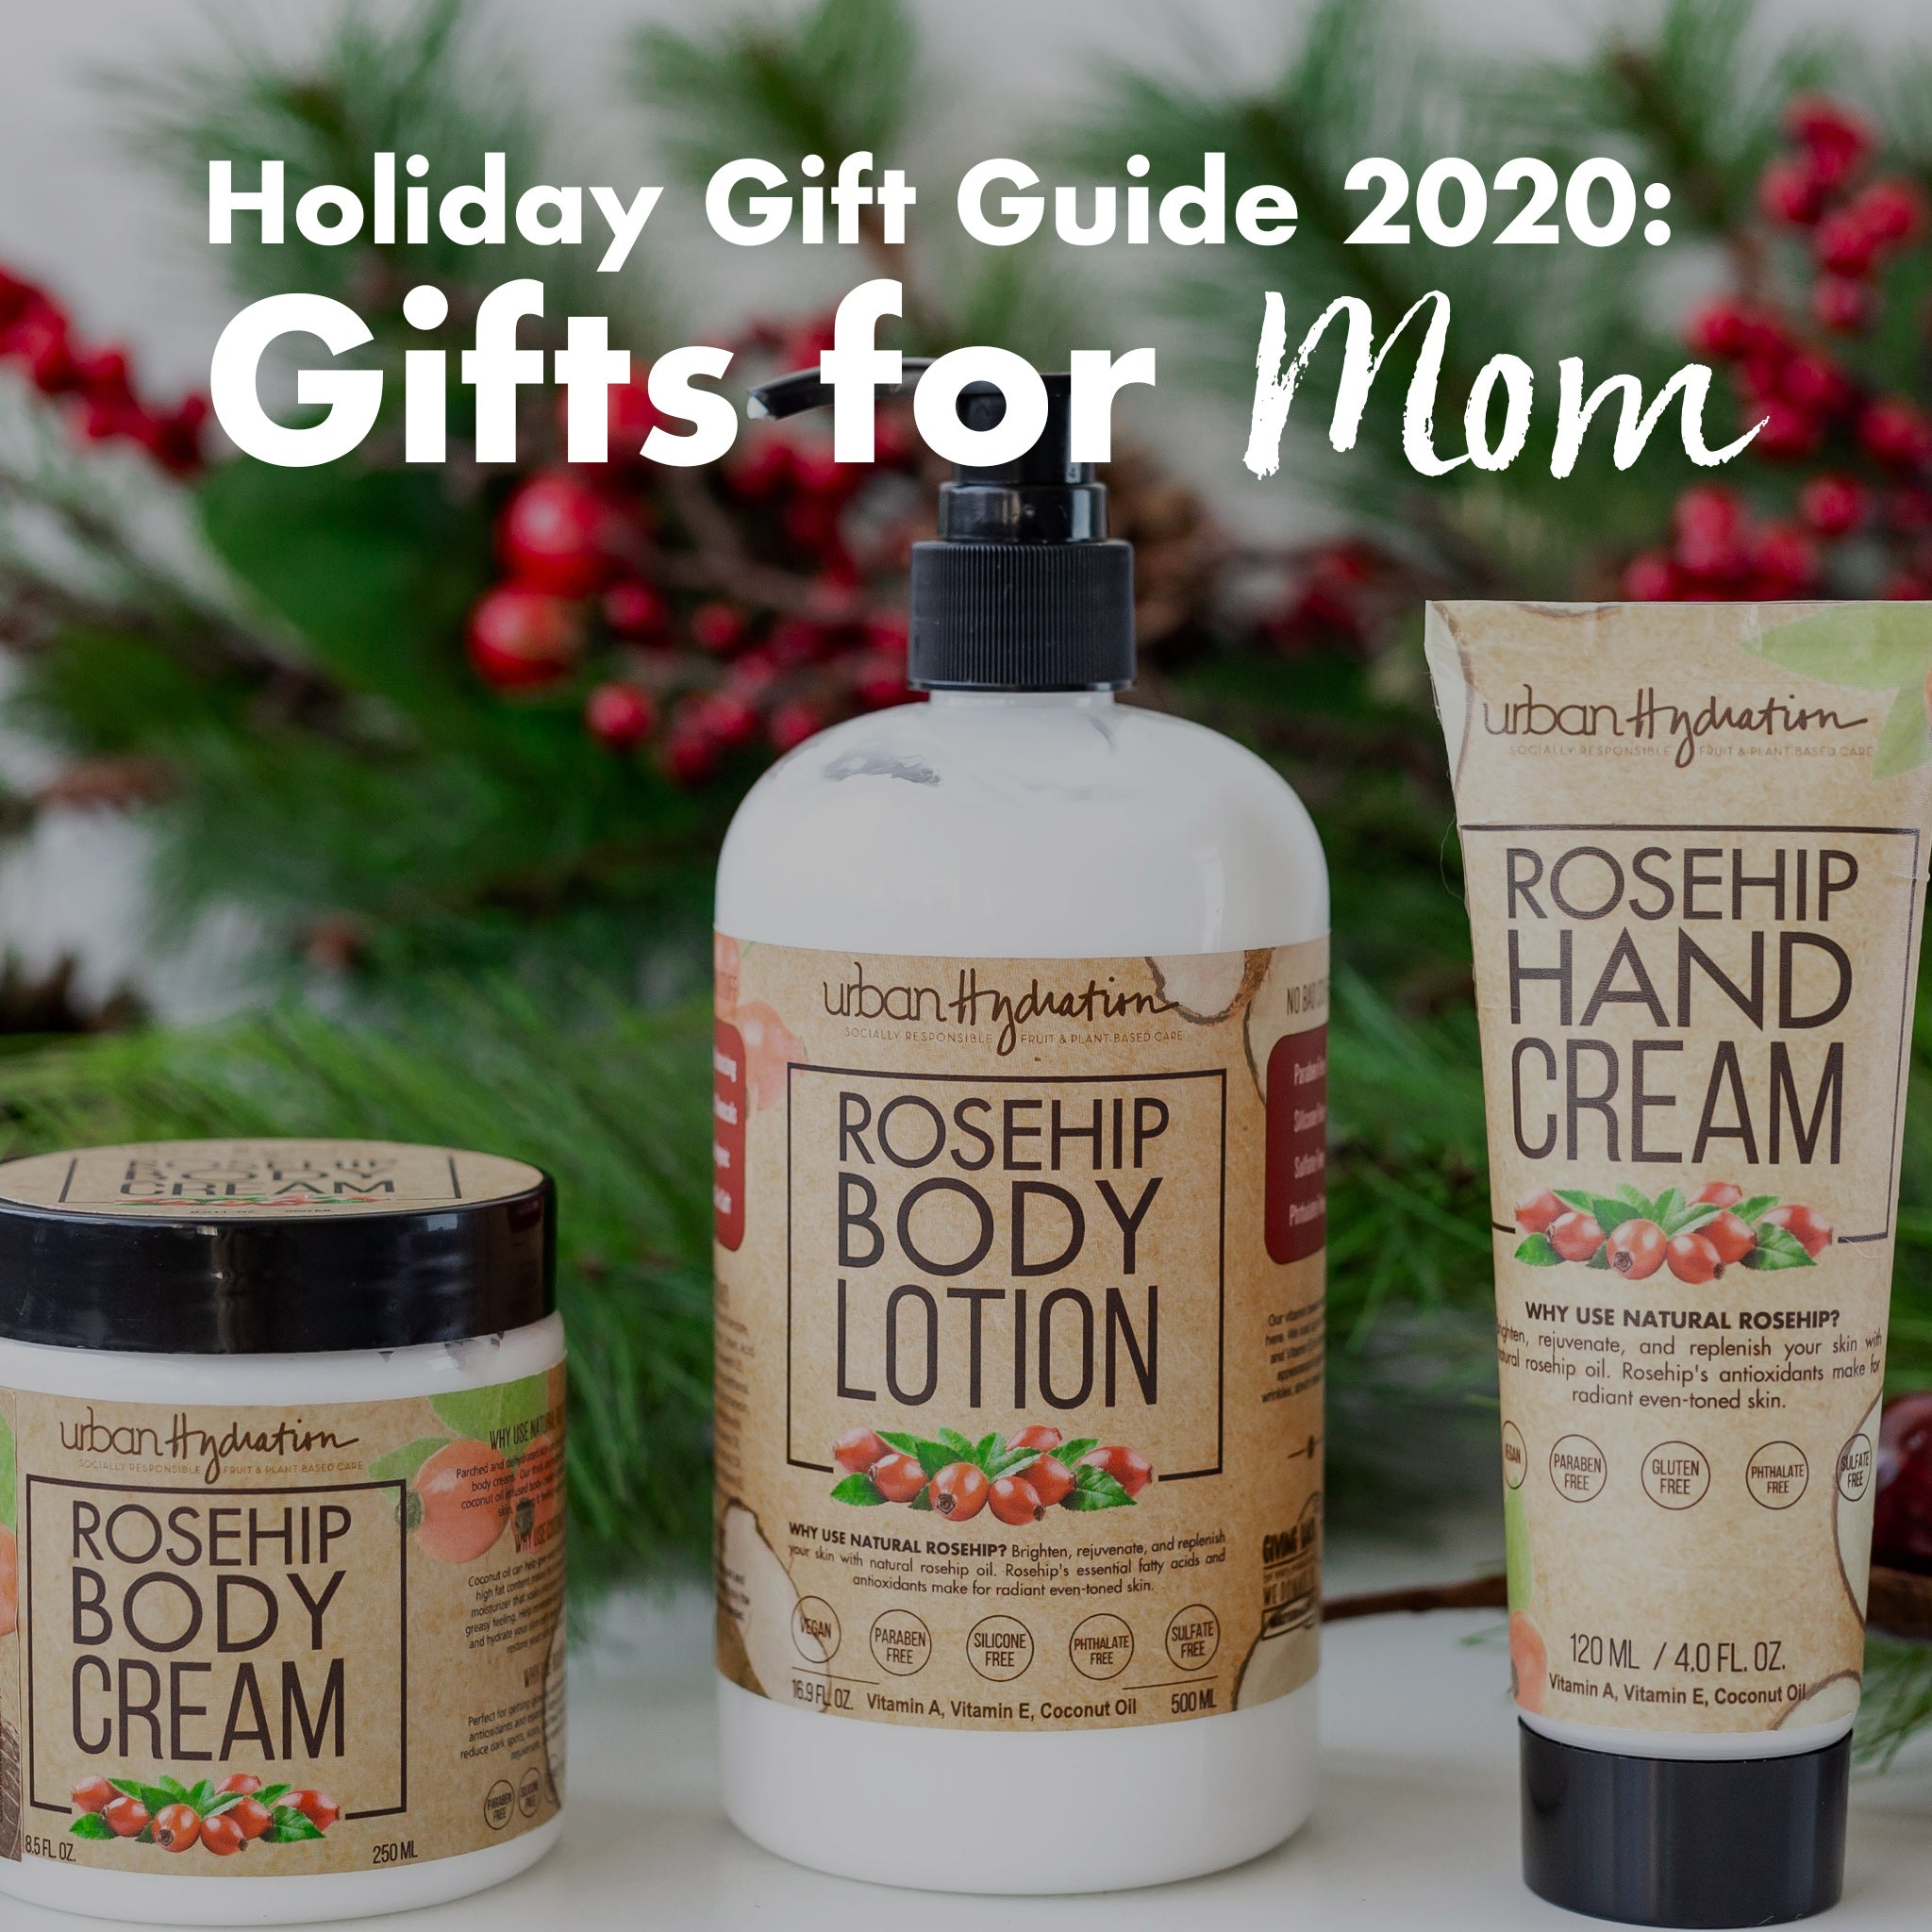 Holiday Gift Guide 2020: Gifts for Mom.